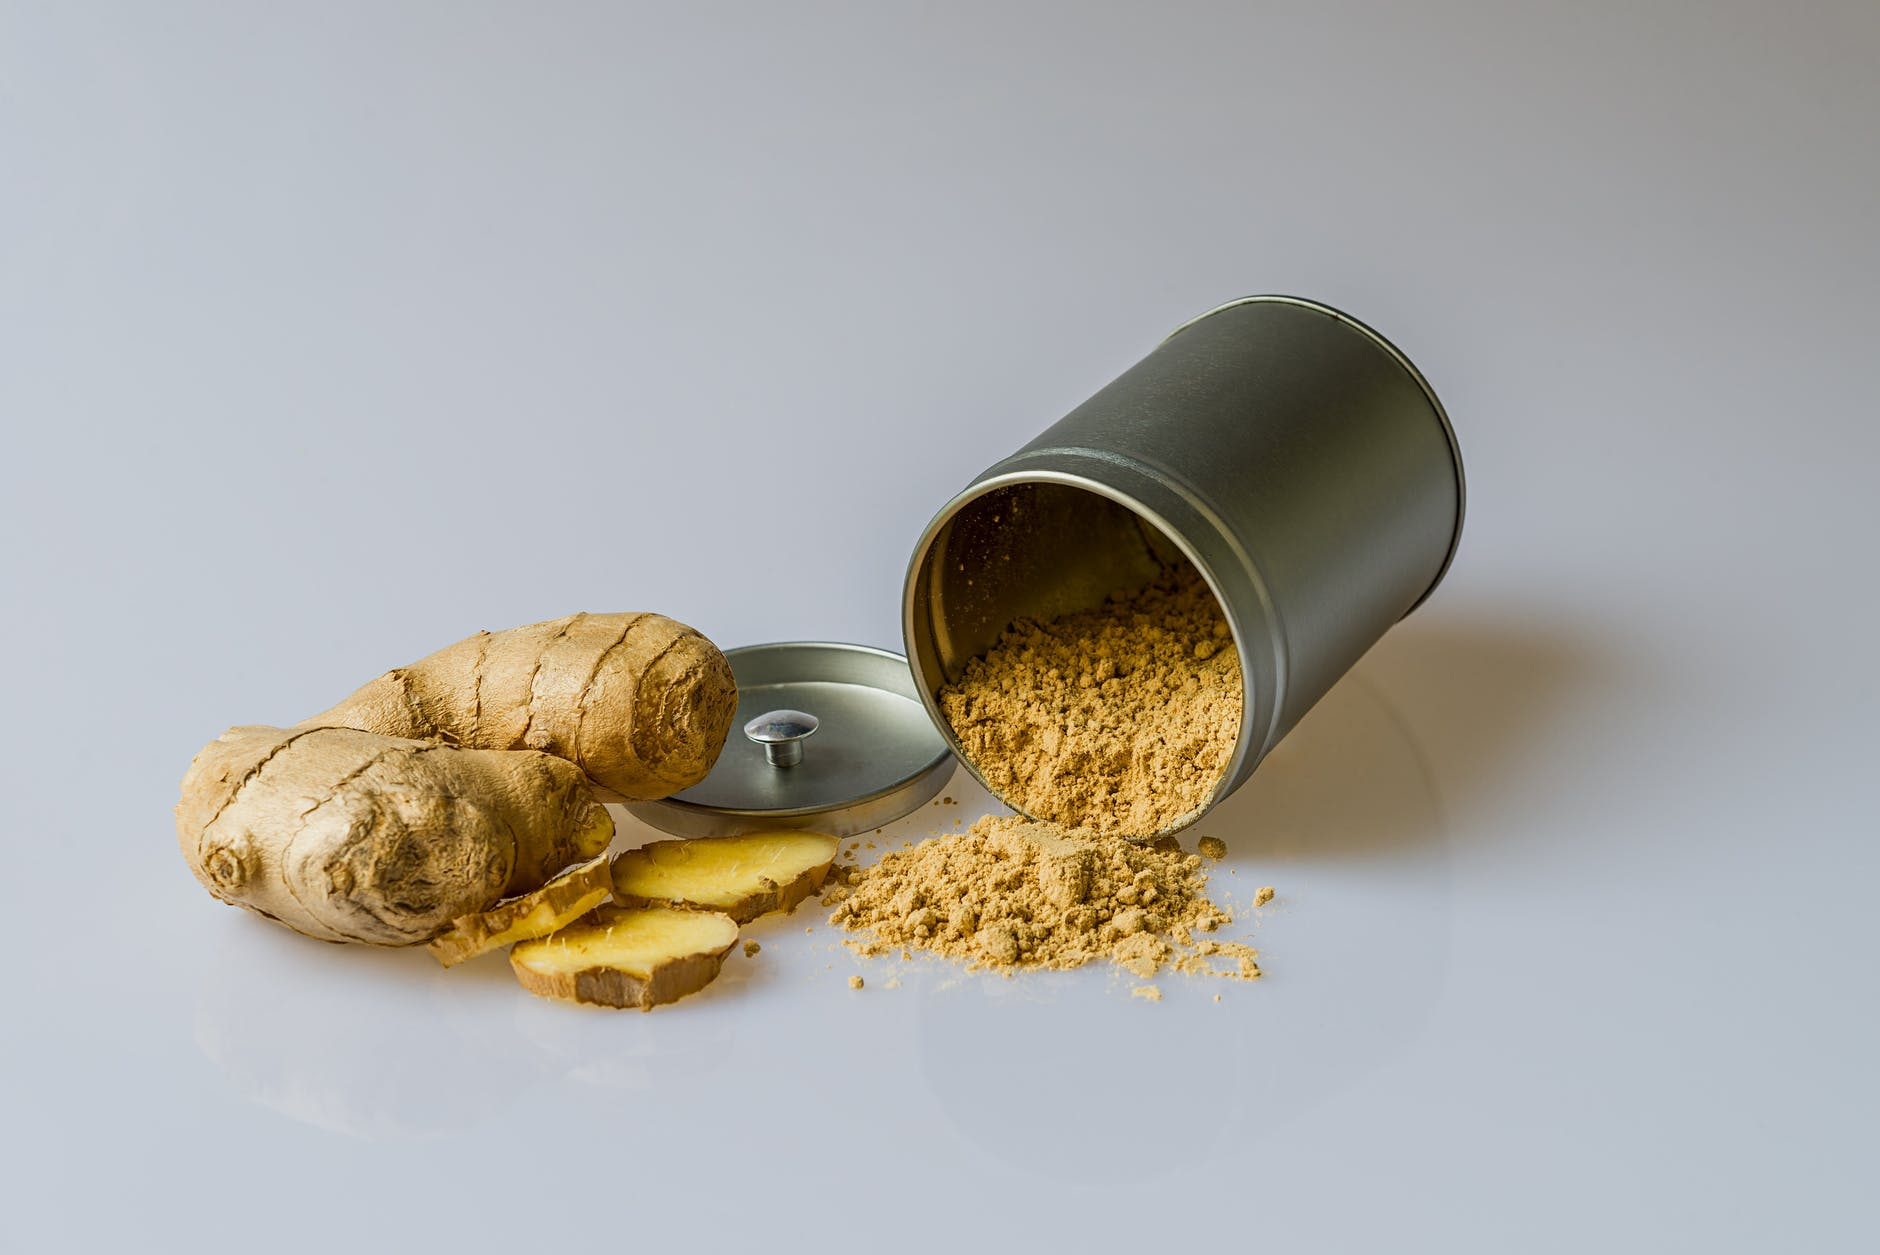 How to Use Ginger for Yeast Infection?